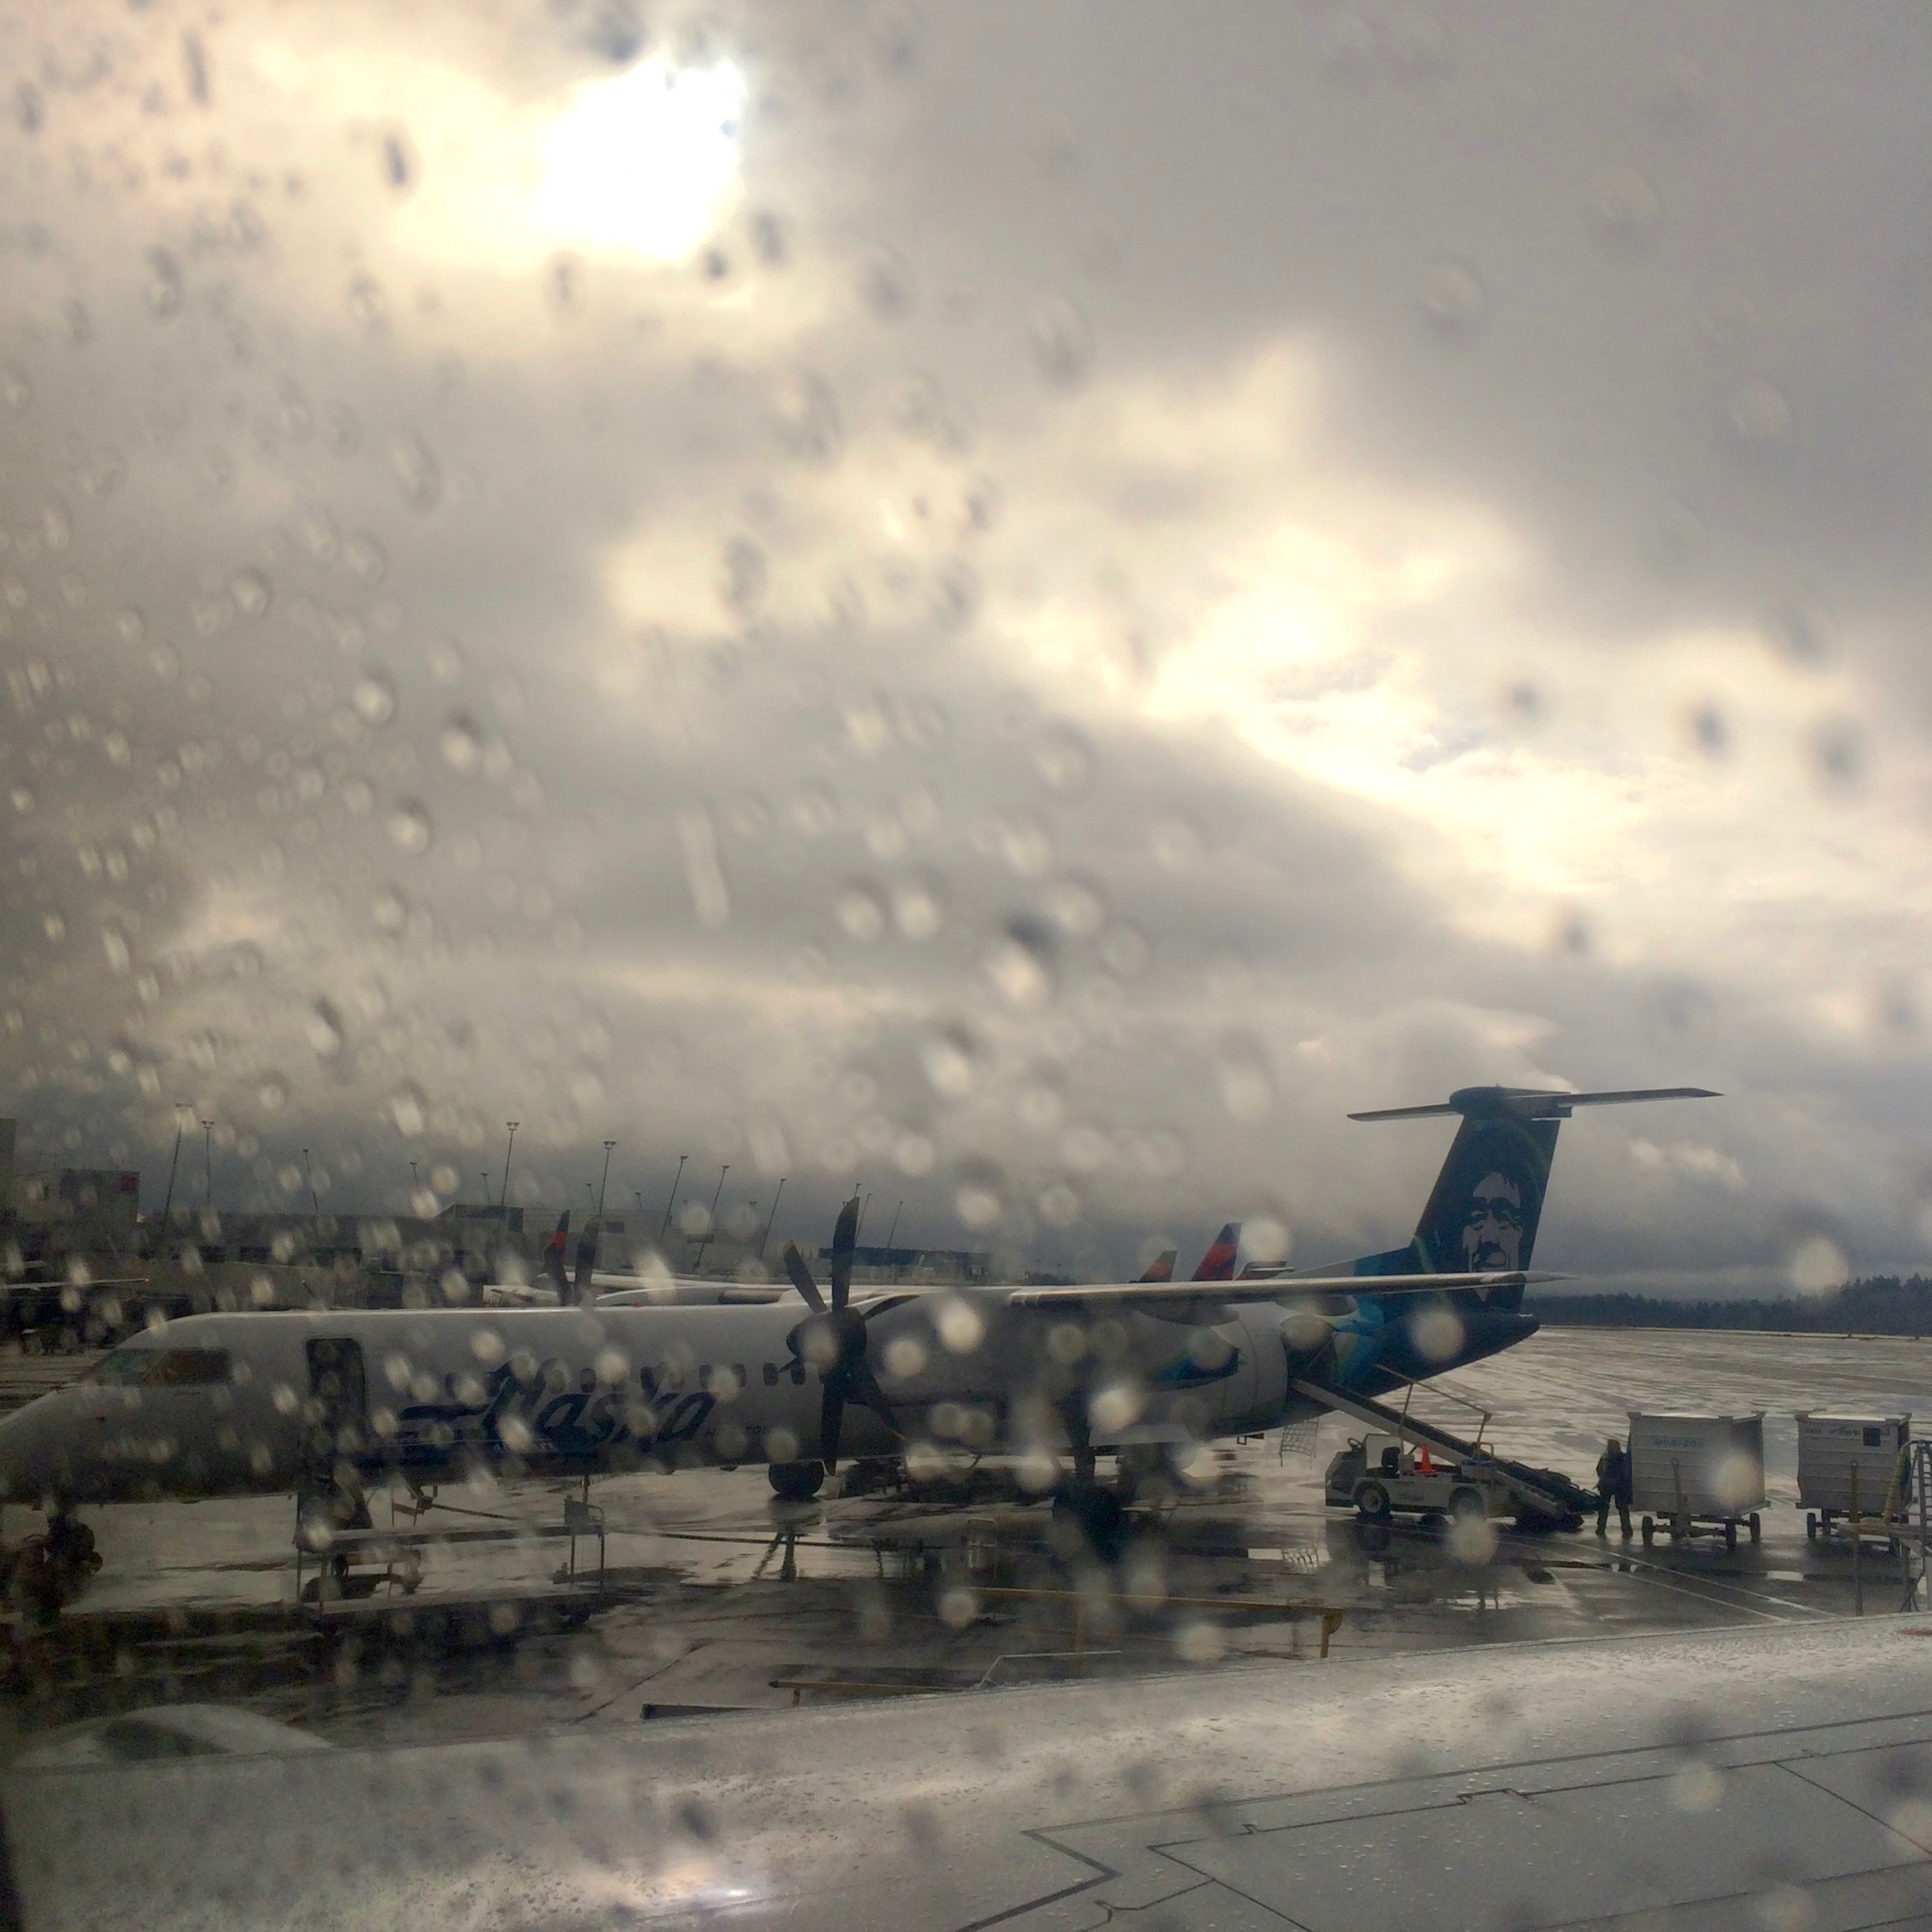 Day 6. Seat 17D, Window view.